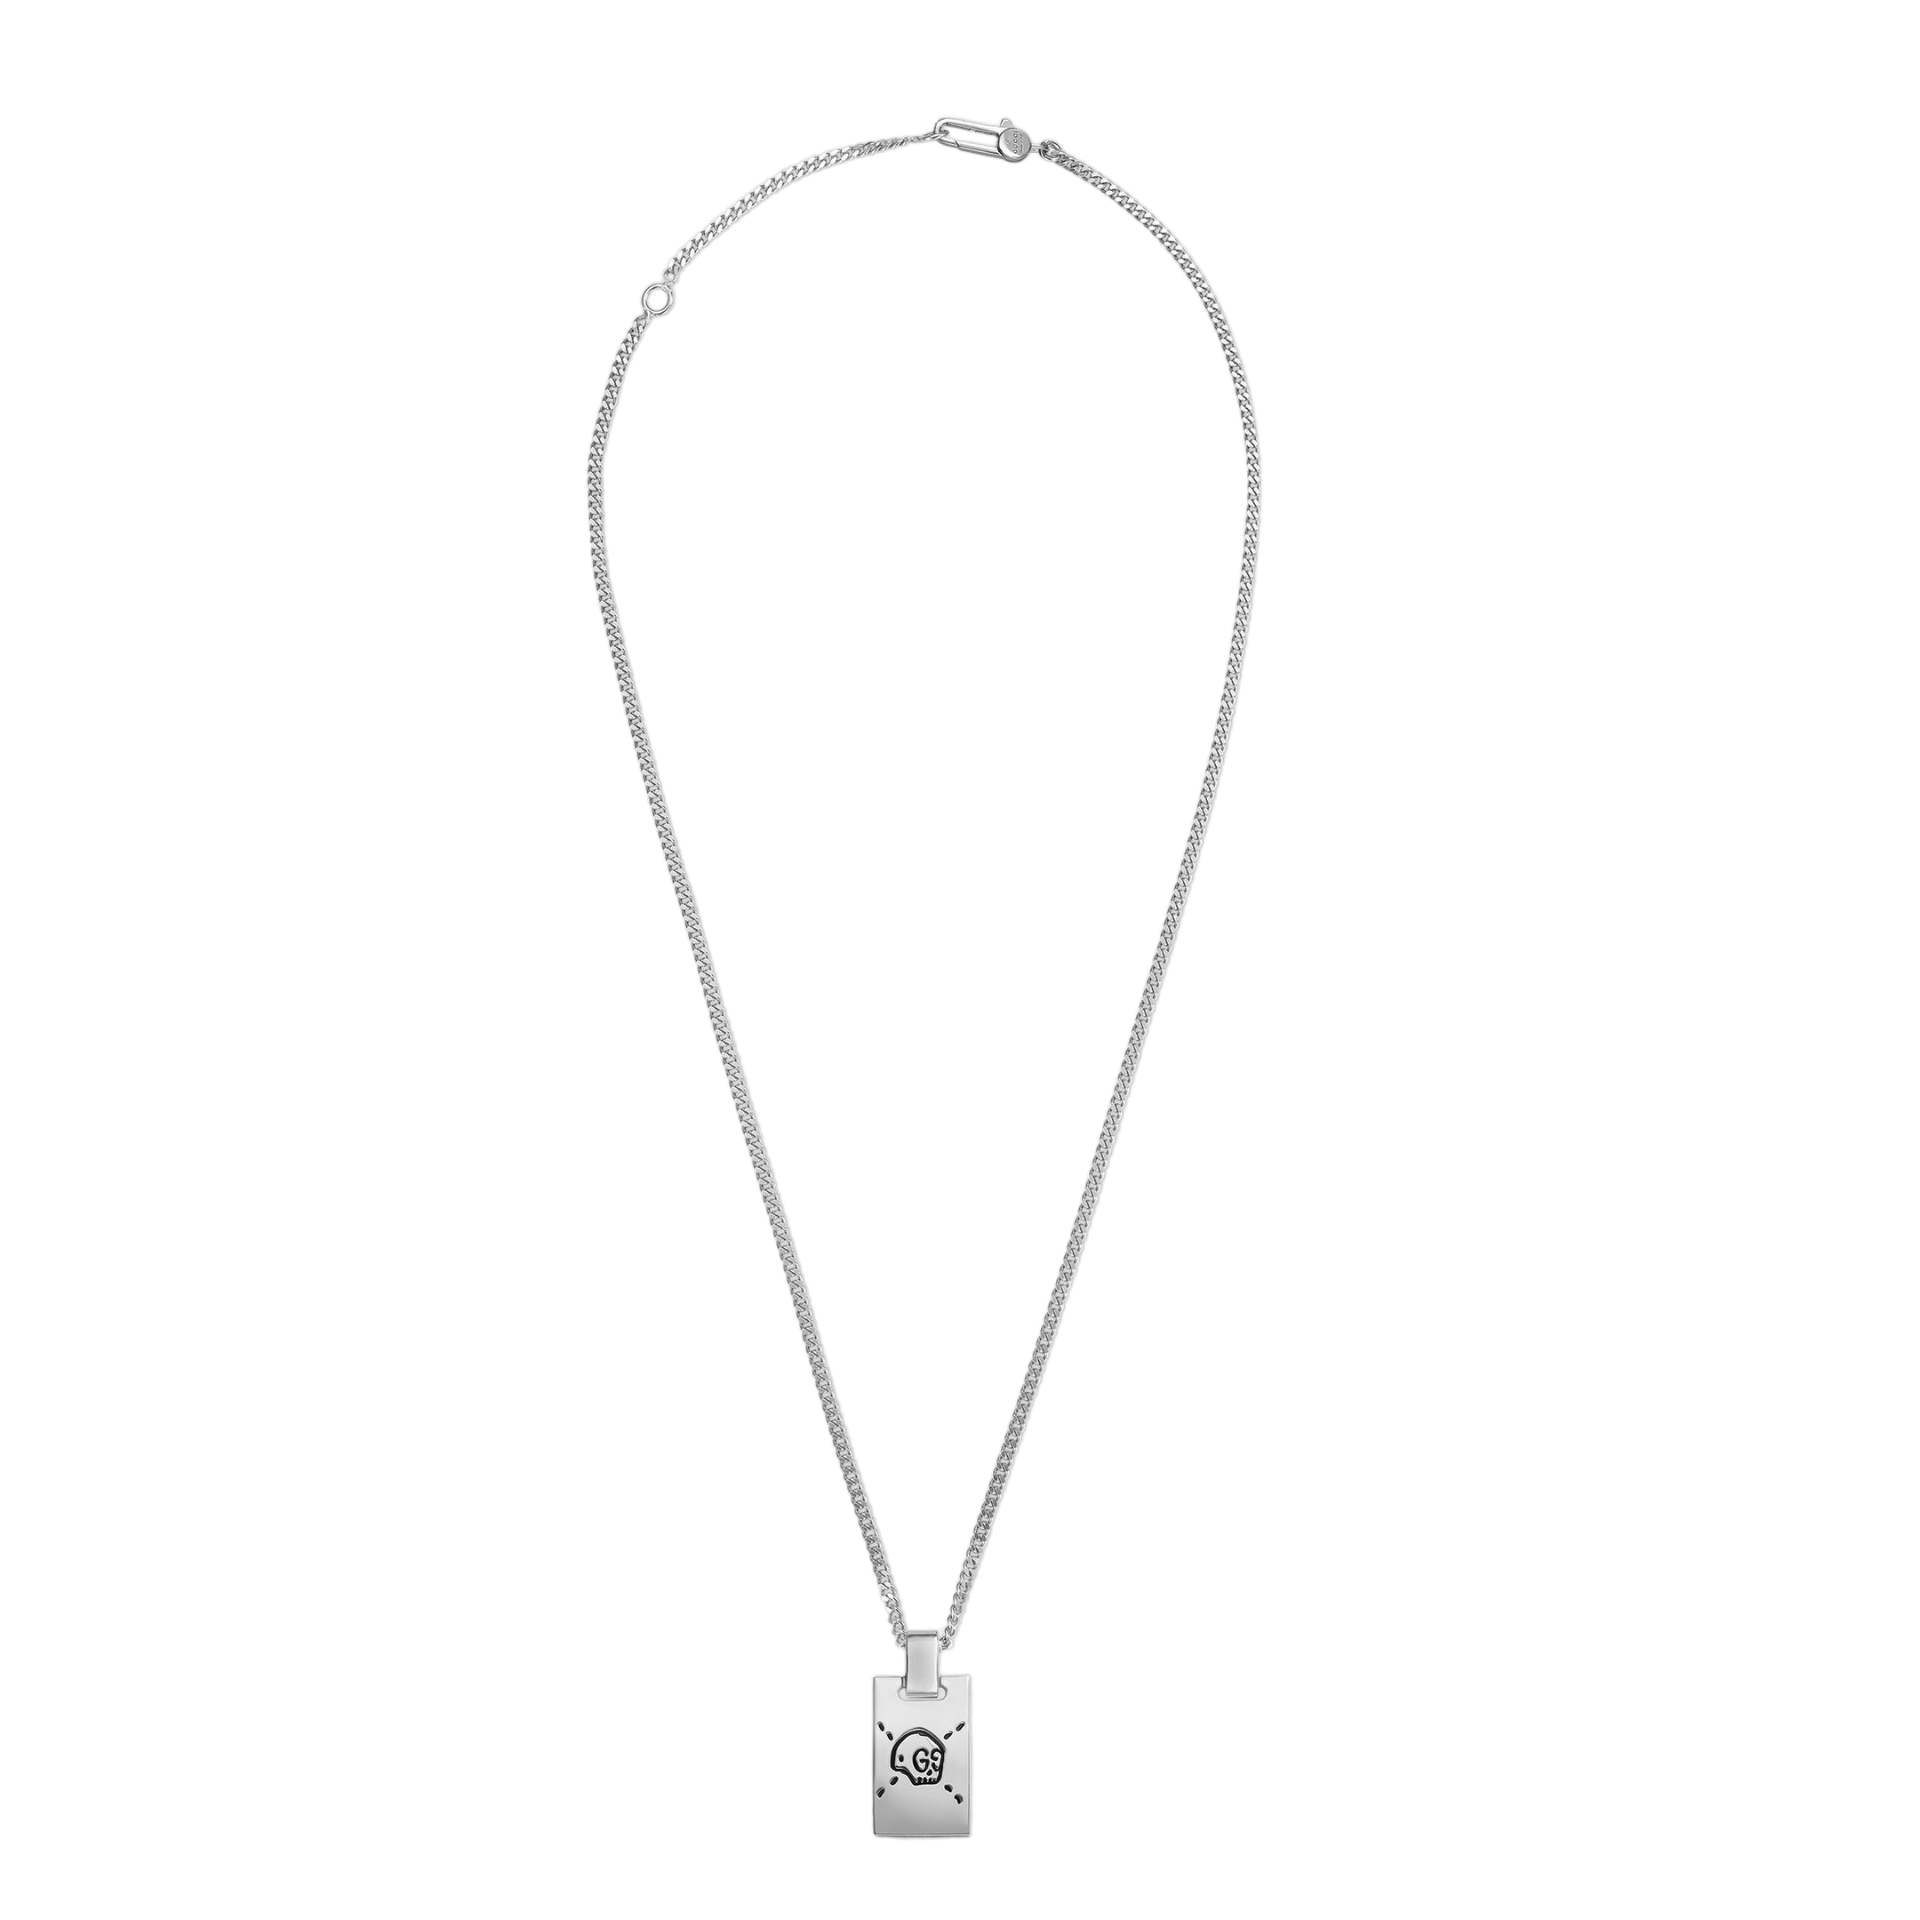 Gucci Ghost Necklace in Sterling Silver - Orsini Jewellers NZ